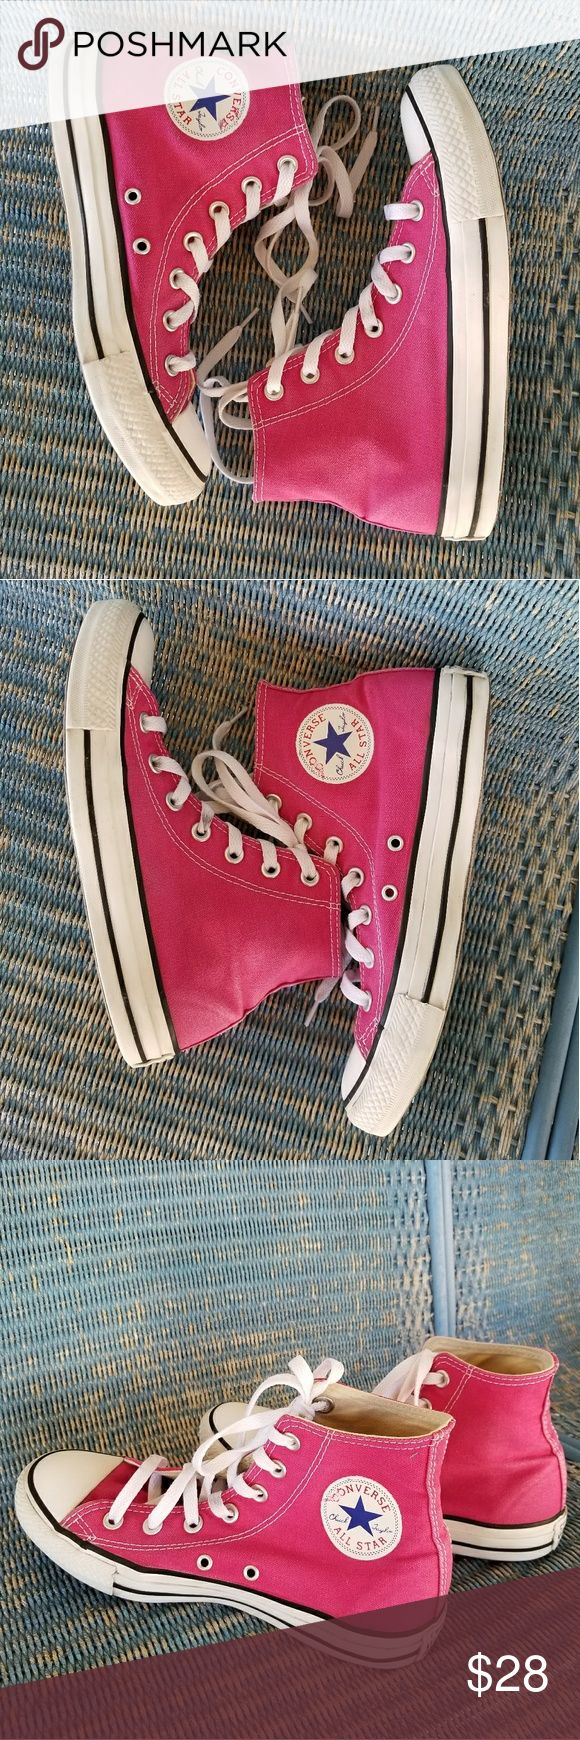 "Hot Pink, High Top Chuck Taylor Converse Great condition! Some wear on the logos as shown.  5"" Chuck Taylor High Tops by Converse. They are bright pink with a white sole. Lace up.   Women's size 8/ men's size 6 Shoe length measures 10.5 inches Converse Shoes"